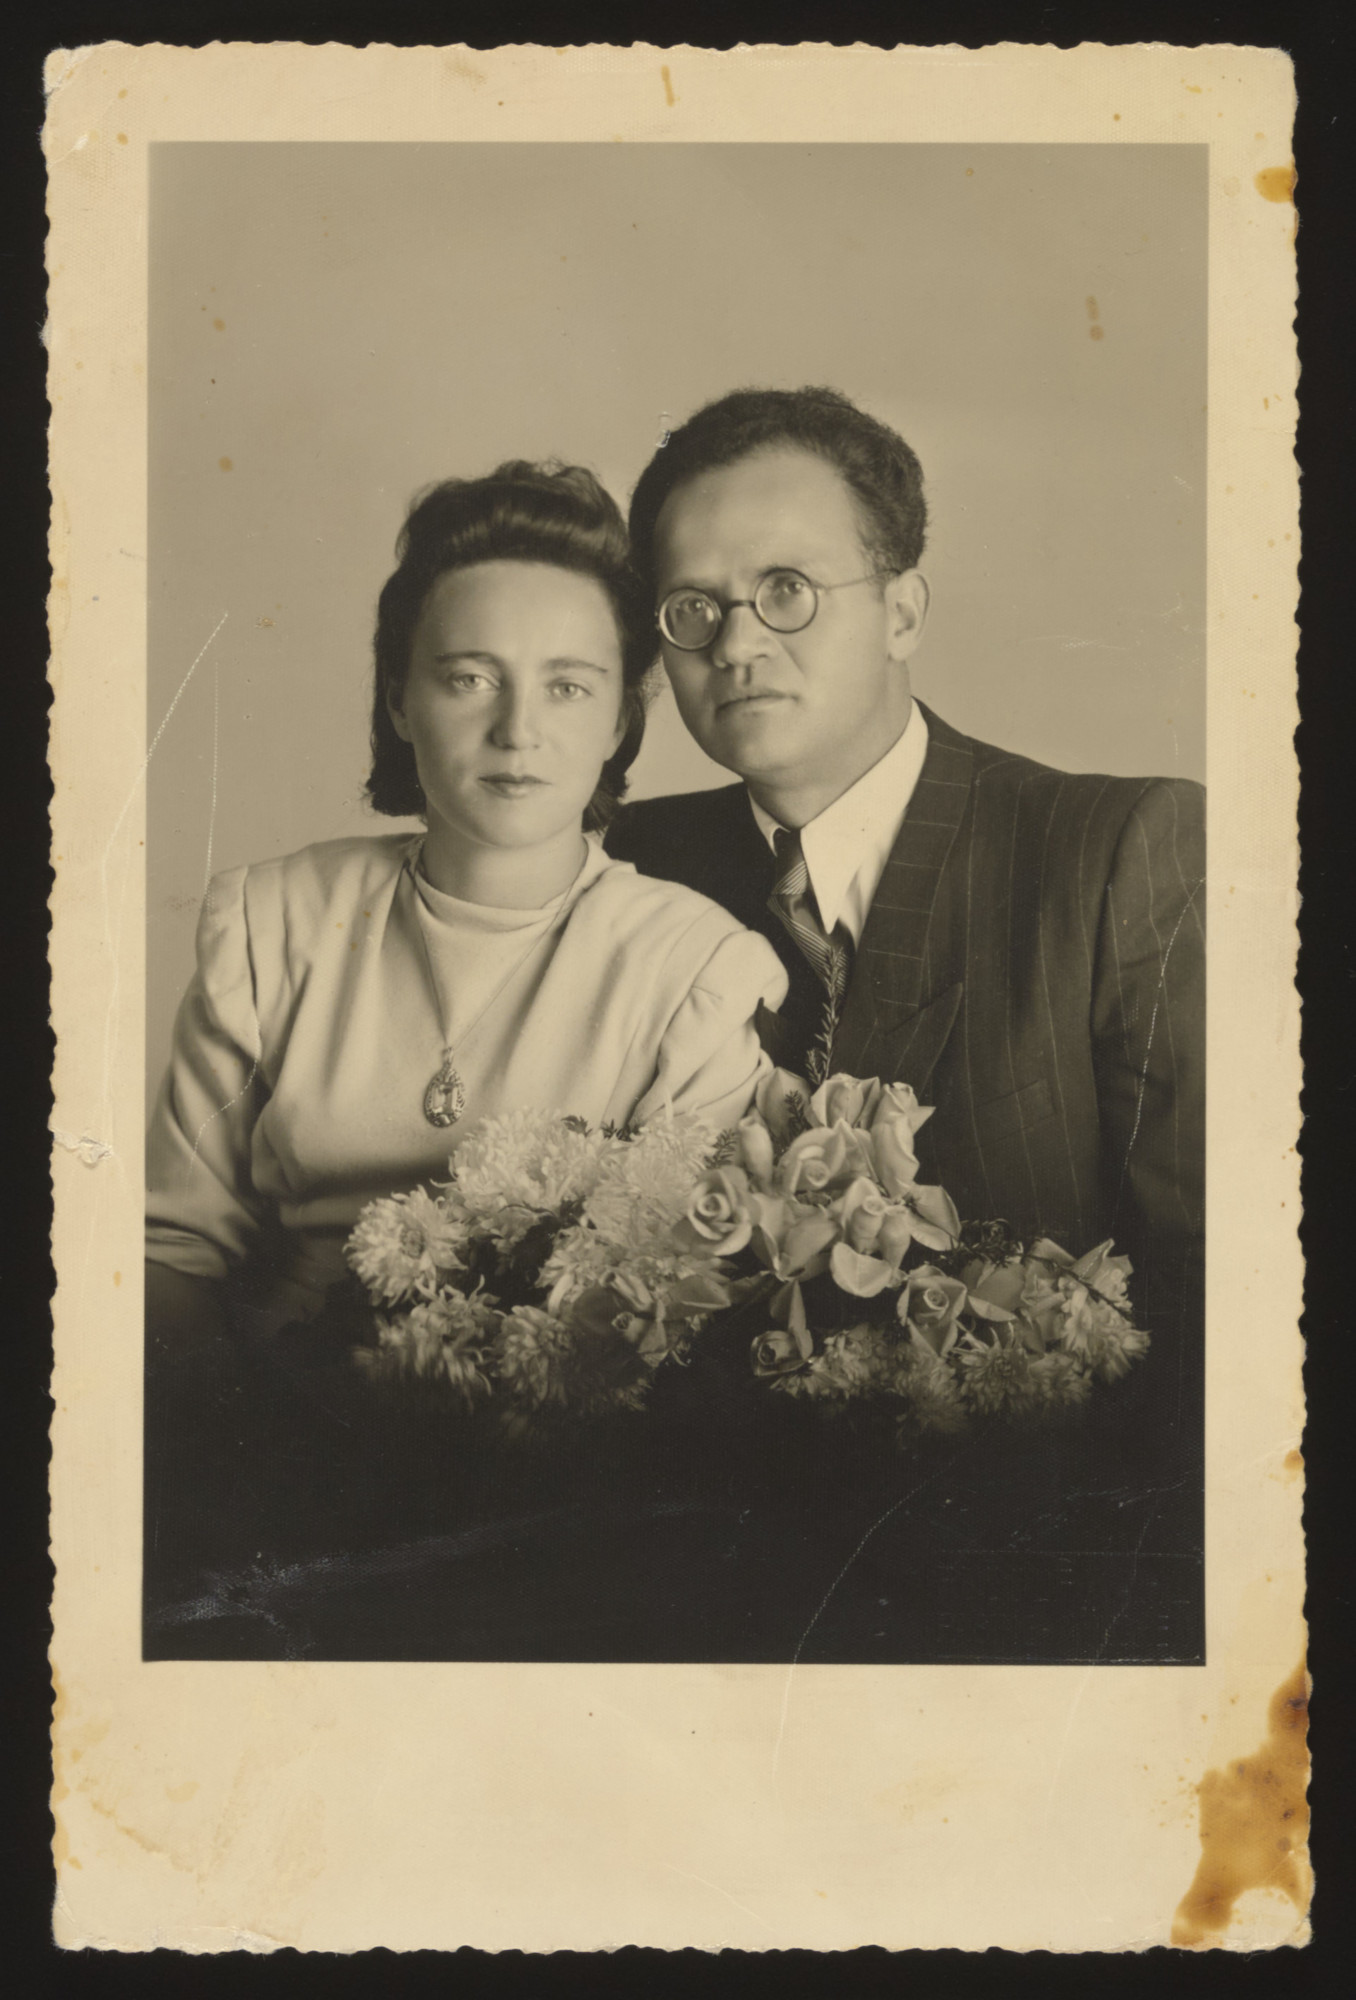 Portrait of a Jewish couple celebrating their wedding in Munich after the war.  Pictured are Lifcia Najman and Lewek Szabason.